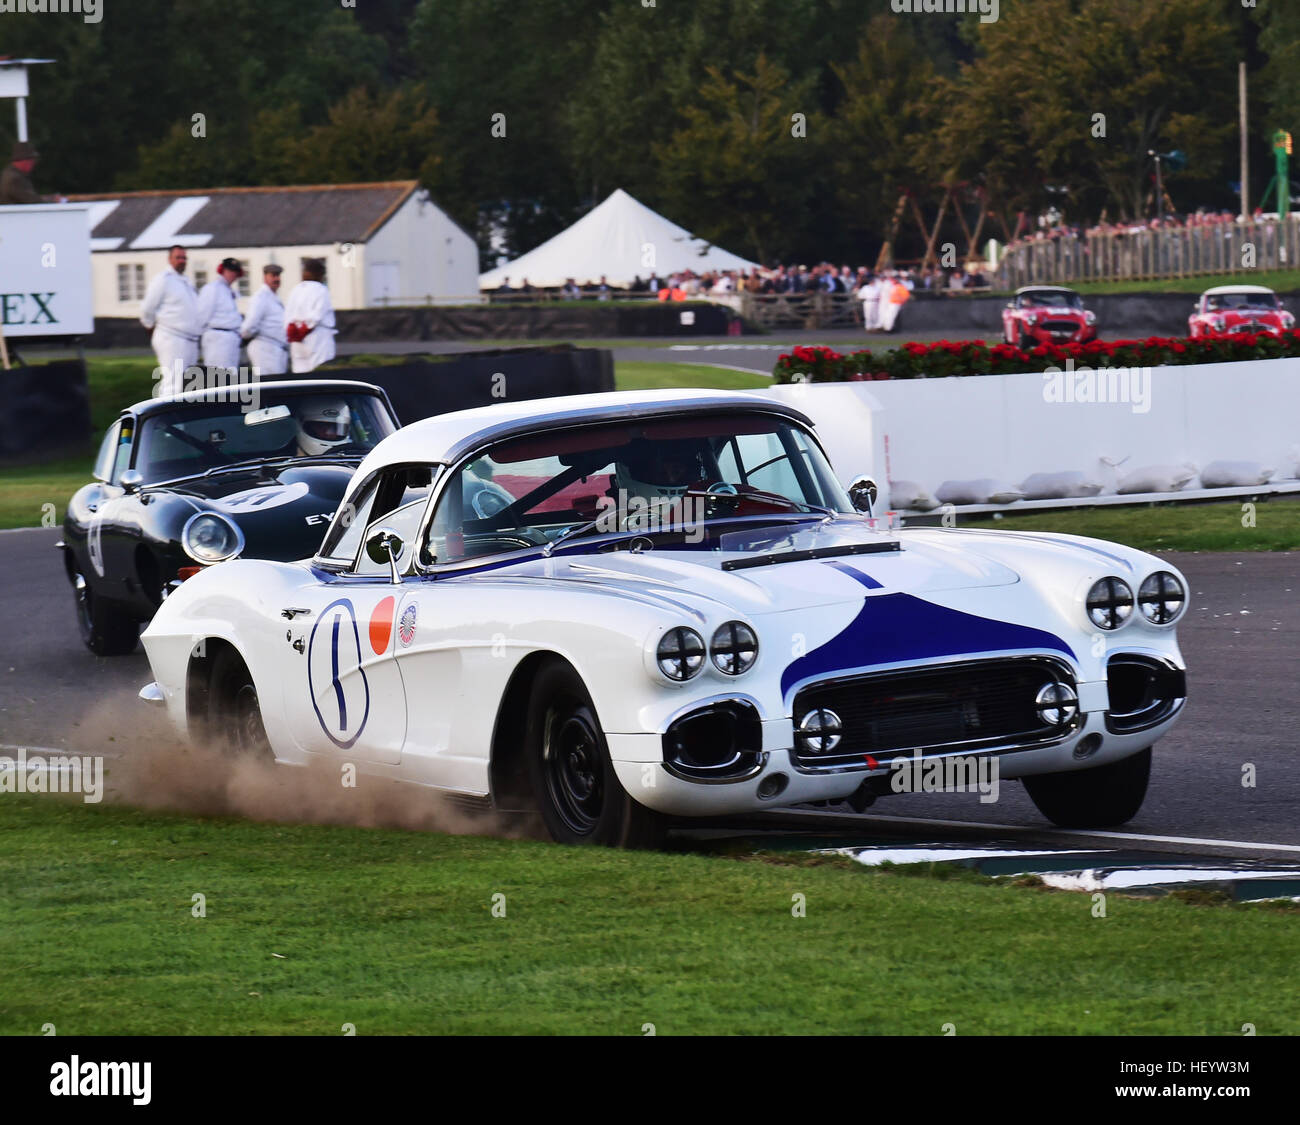 Charles Clegg Henry Arundel Chevrolet Corvette C1 Kinrara Trophy Stock Photo Alamy